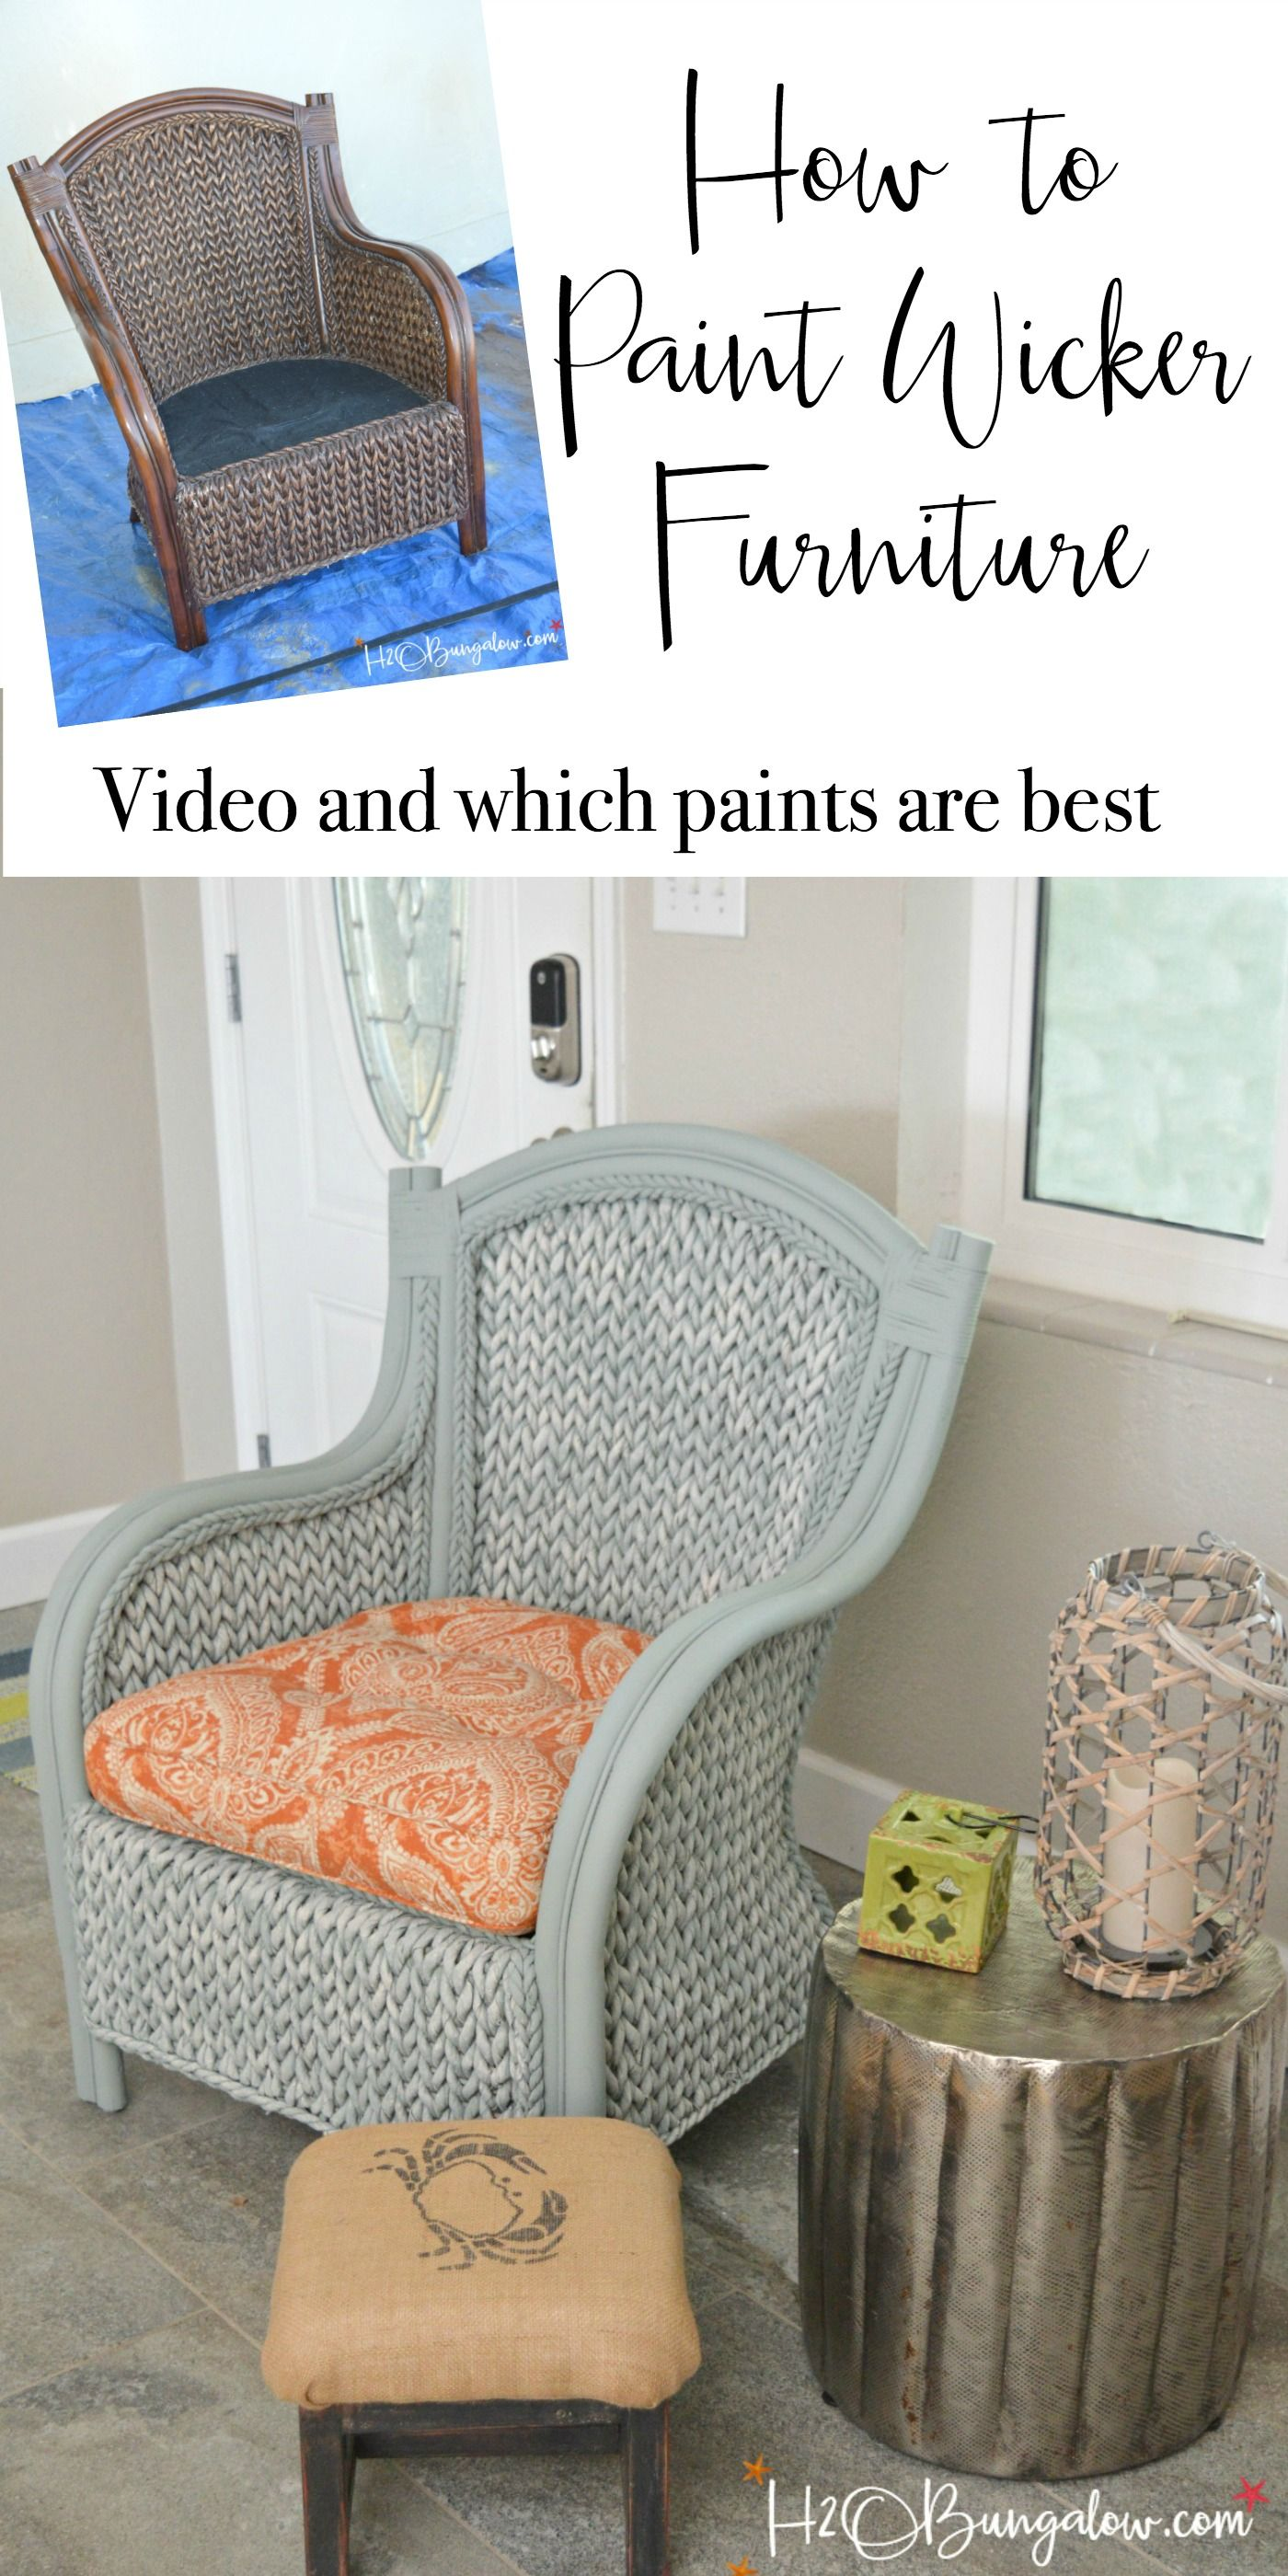 Charming How To Paint Wicker Furniture With A Paint Sprayer. Tutorial And Video  Shows How To Paint A Wicker Chair With What Paints To Use On Wicker For Best  Results.